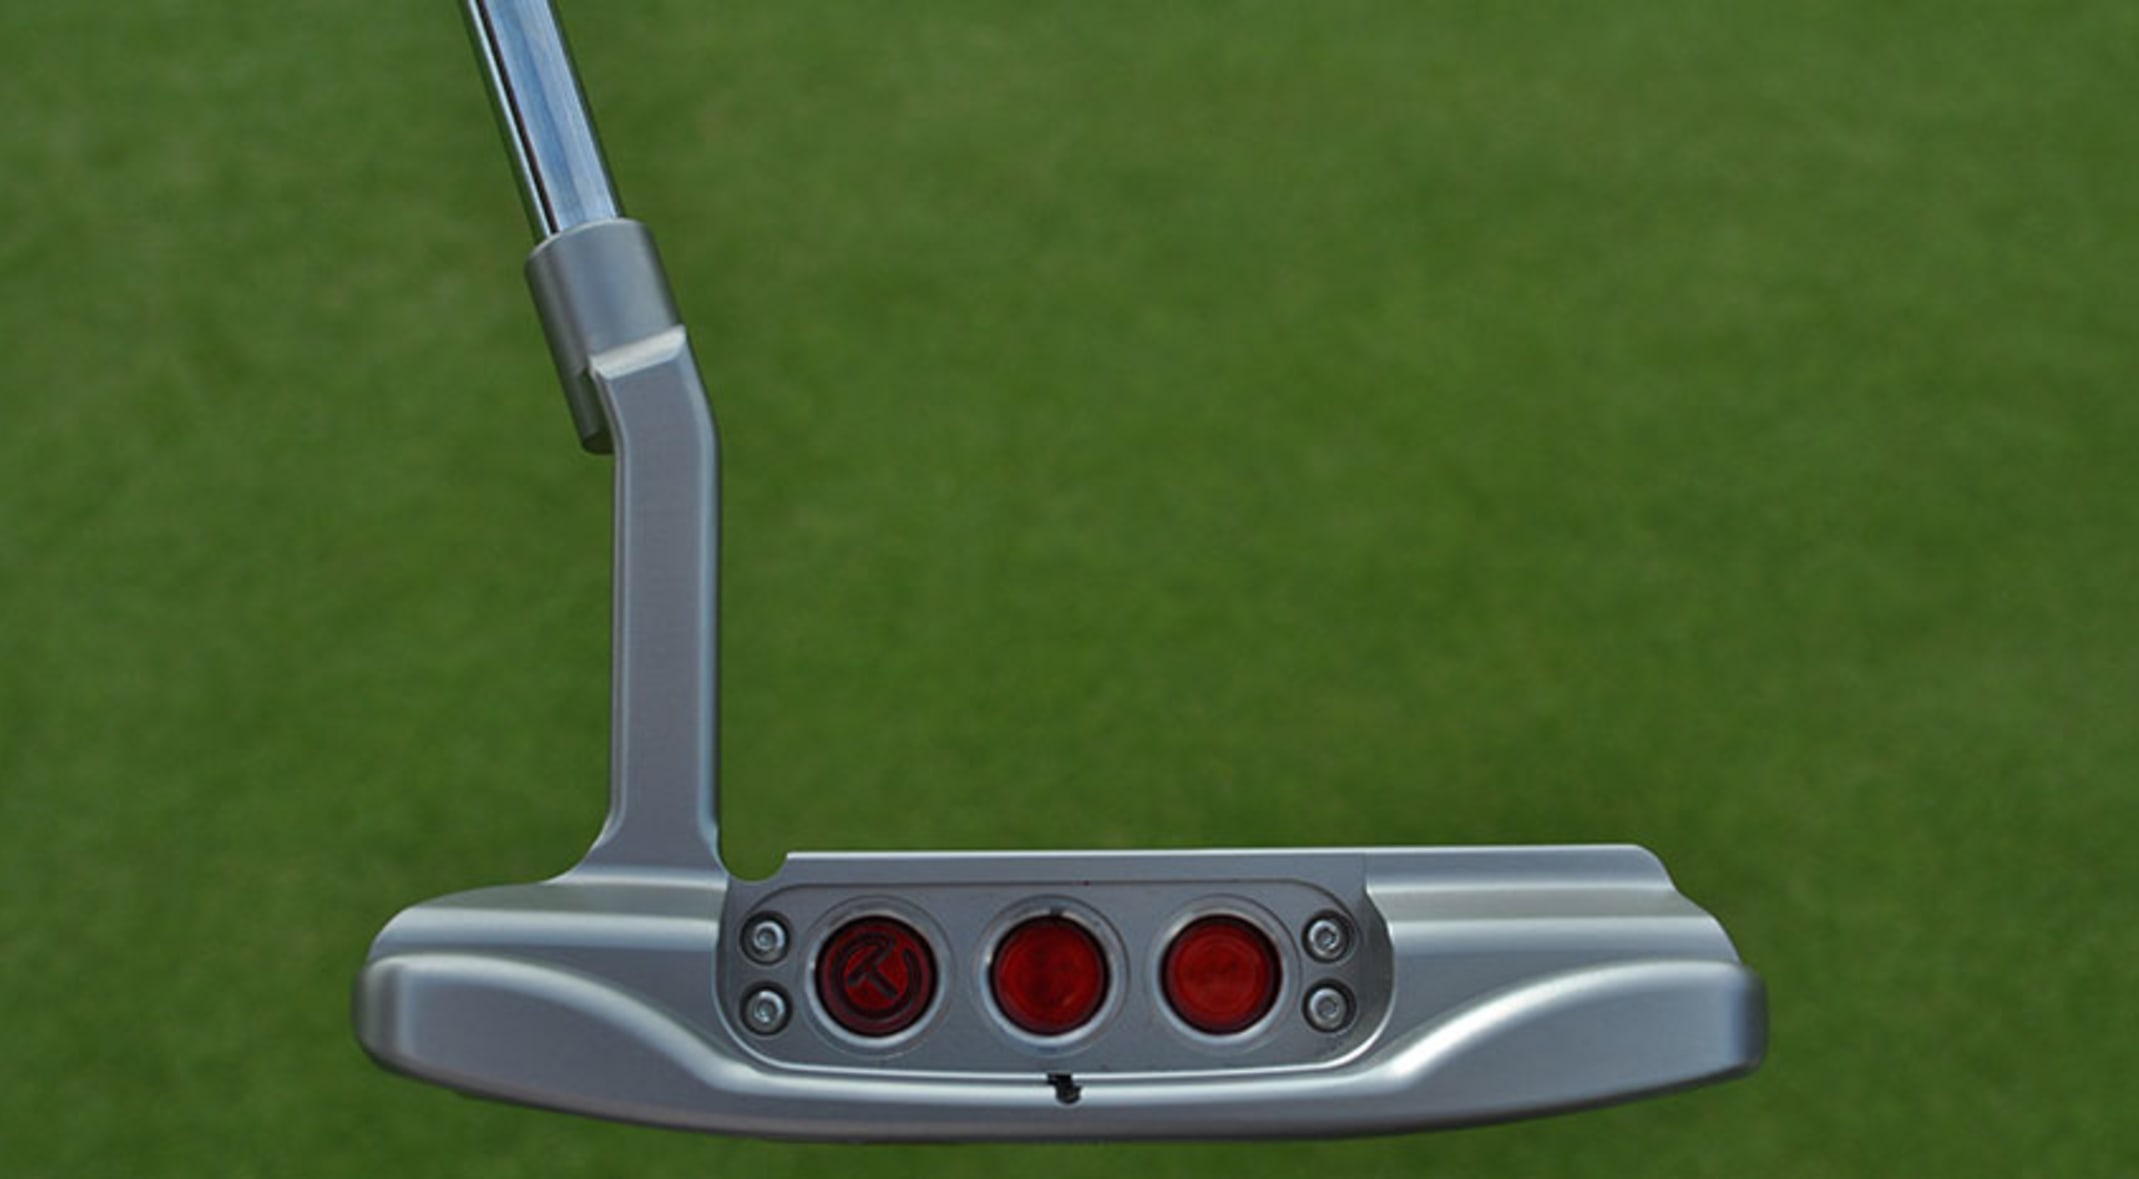 New Scotty Cameron putter spotted